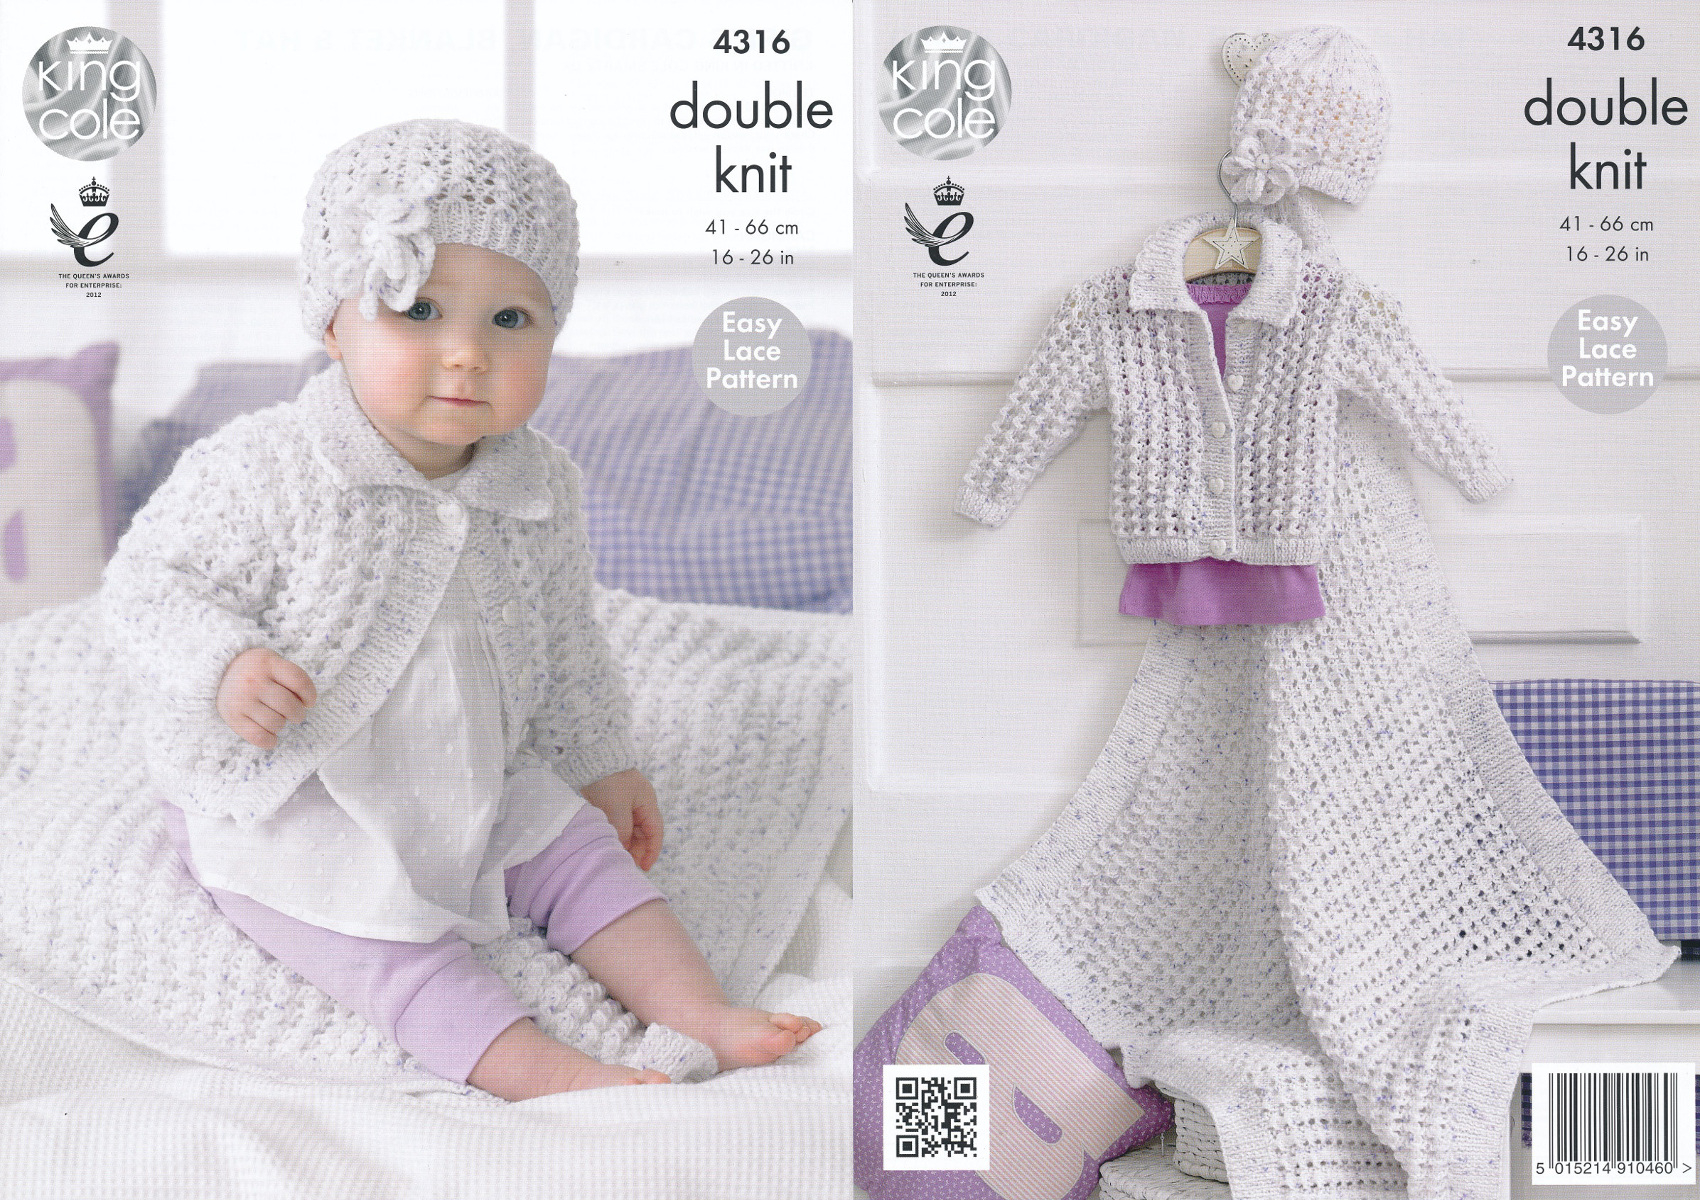 Double Knitting Baby Patterns Details About King Cole Double Knitting Pattern Ba Lace Cardigan Blanket Flower Hat Dk 4316